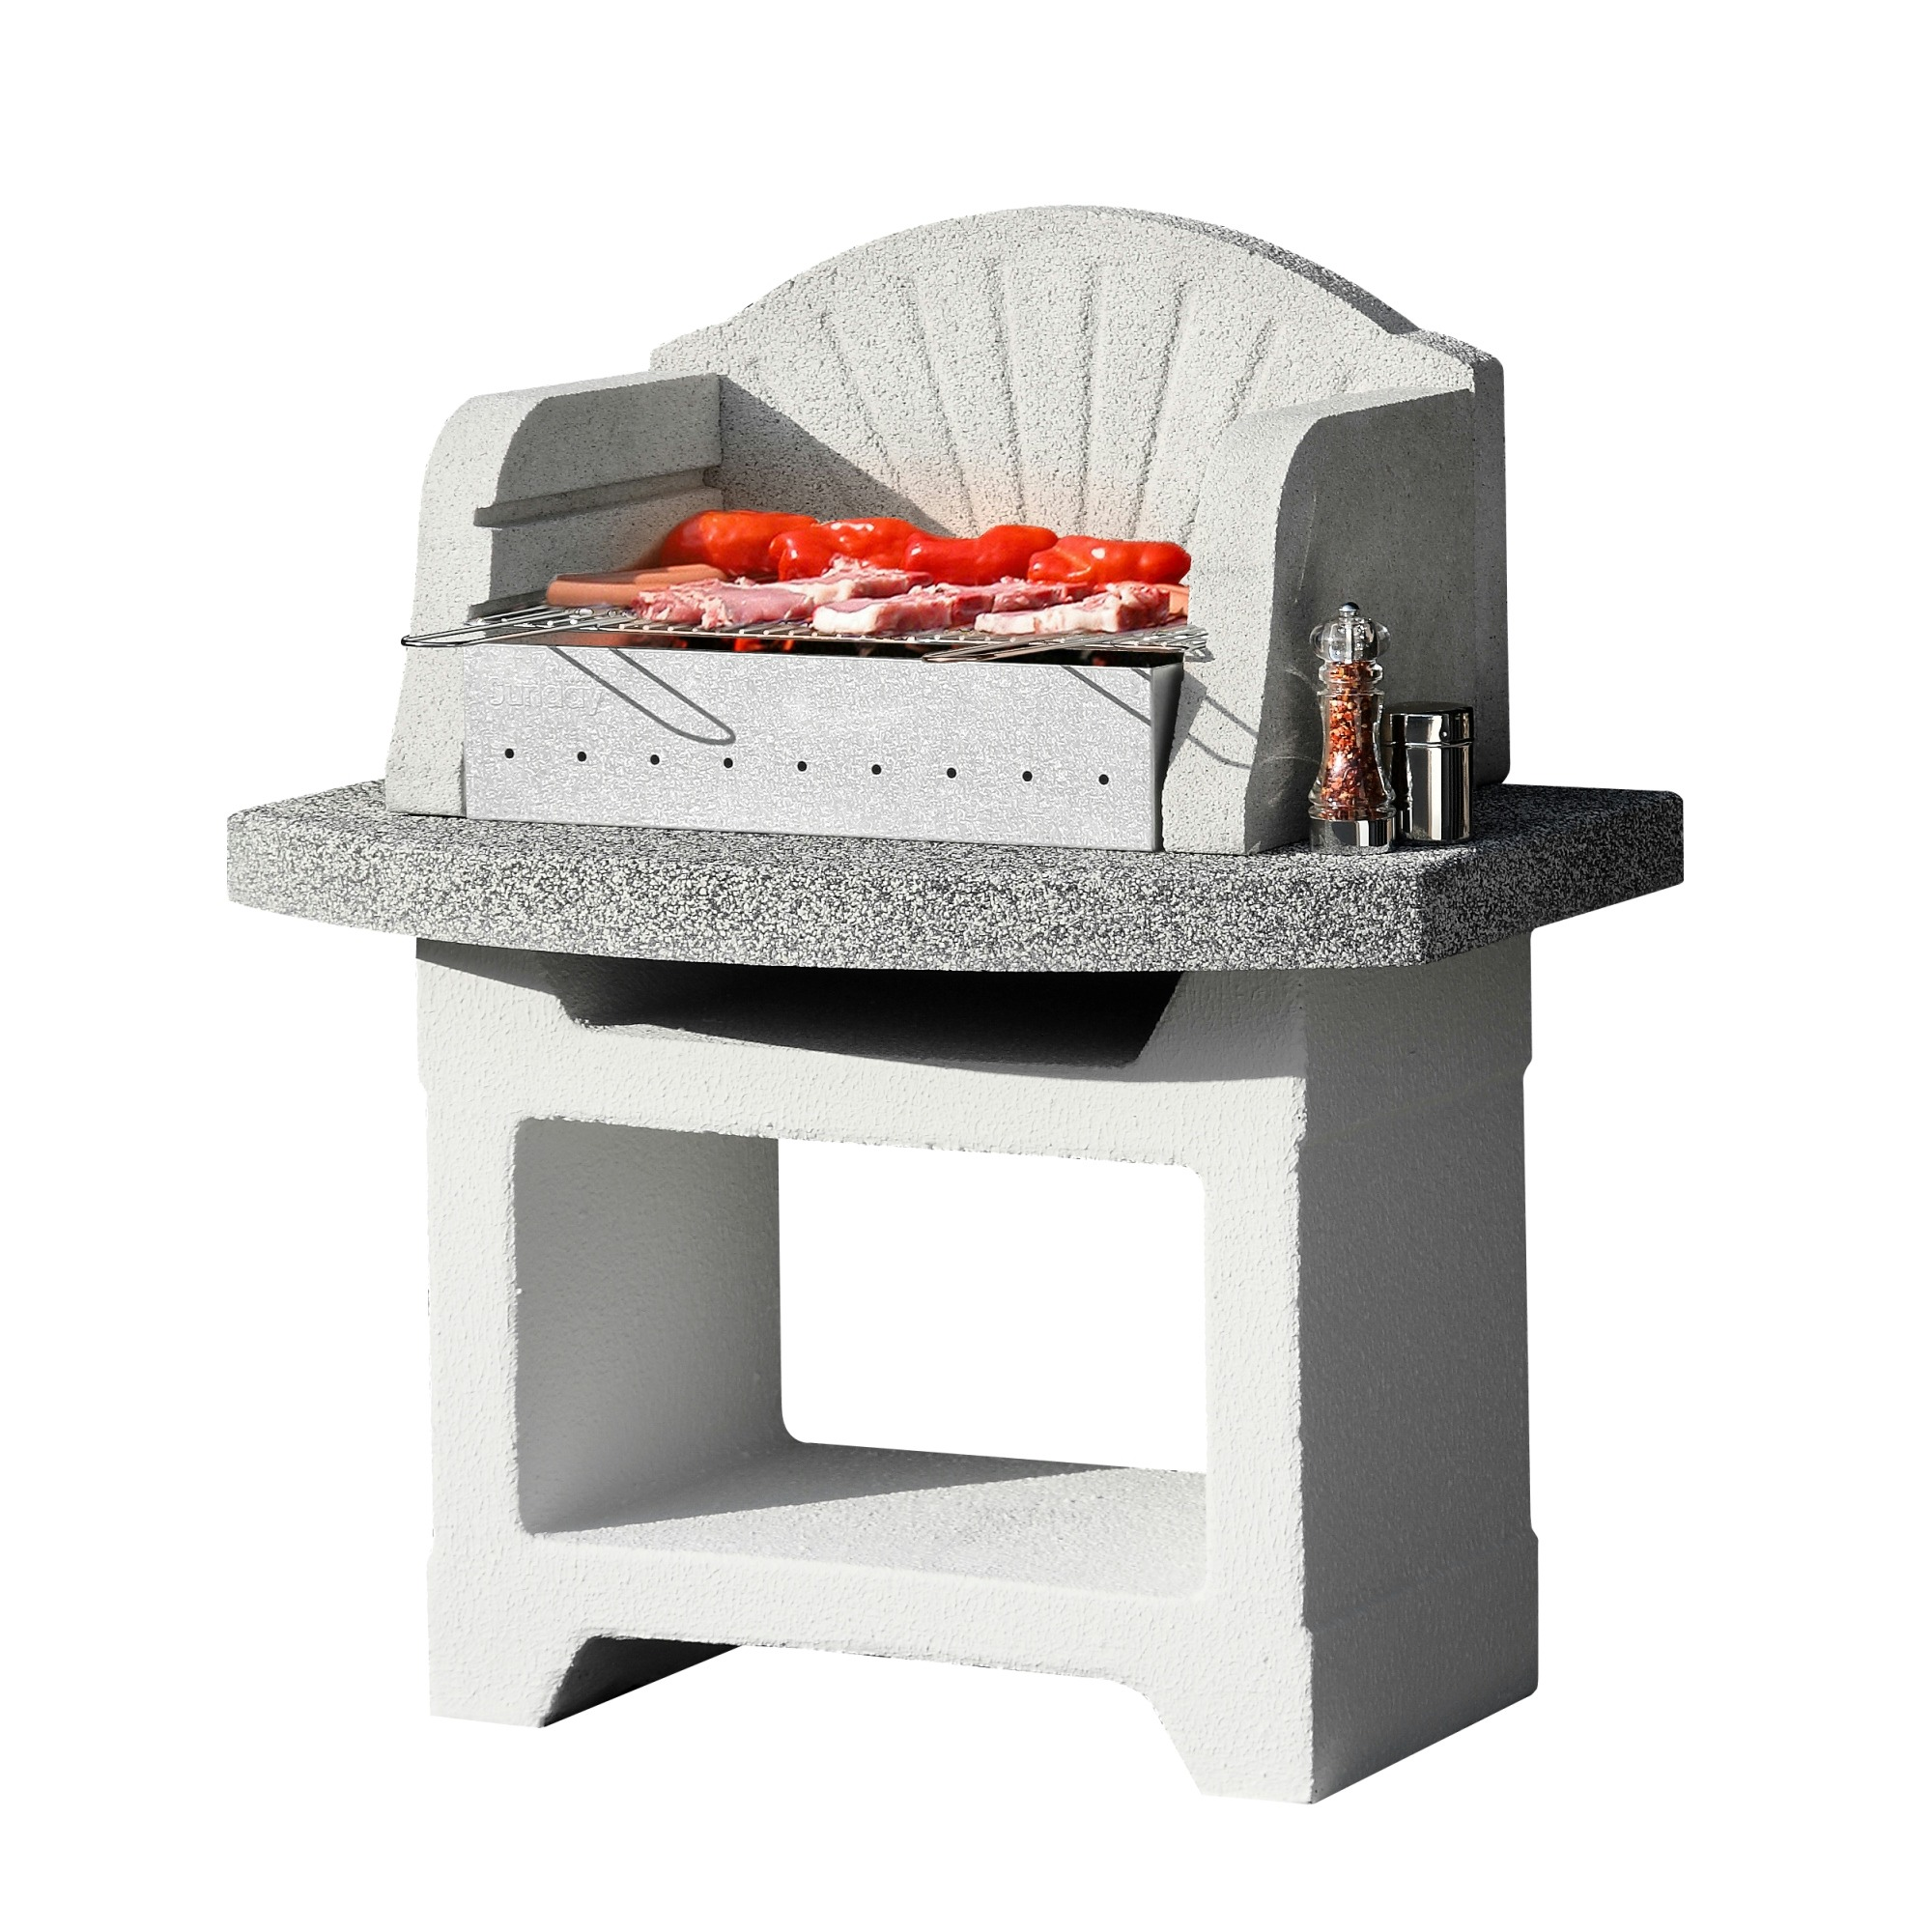 barbecue beton palma special wit met grijs barbecues barbecue tuin gamma. Black Bedroom Furniture Sets. Home Design Ideas